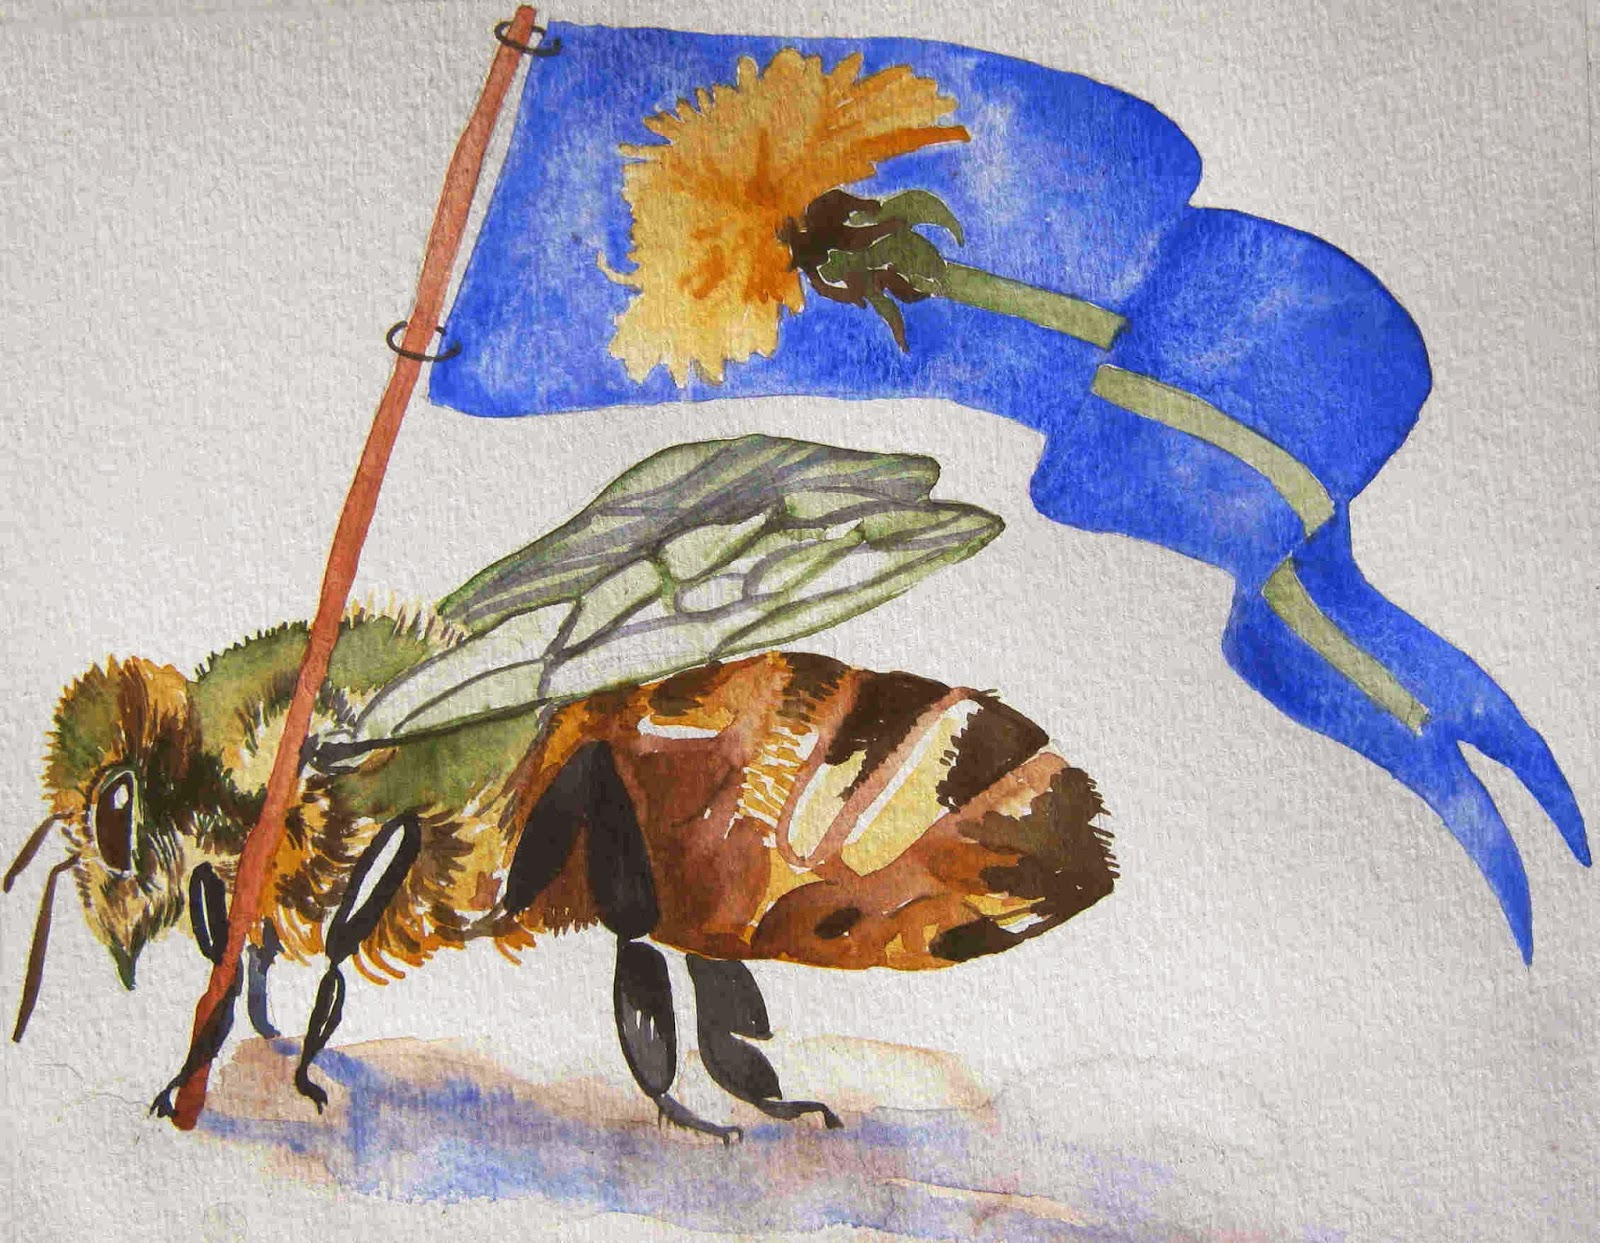 """BEES FOR PEACE"" J. Muir 2014 Colors of Nature paint on watercolor paper 7¼ x 9¼"